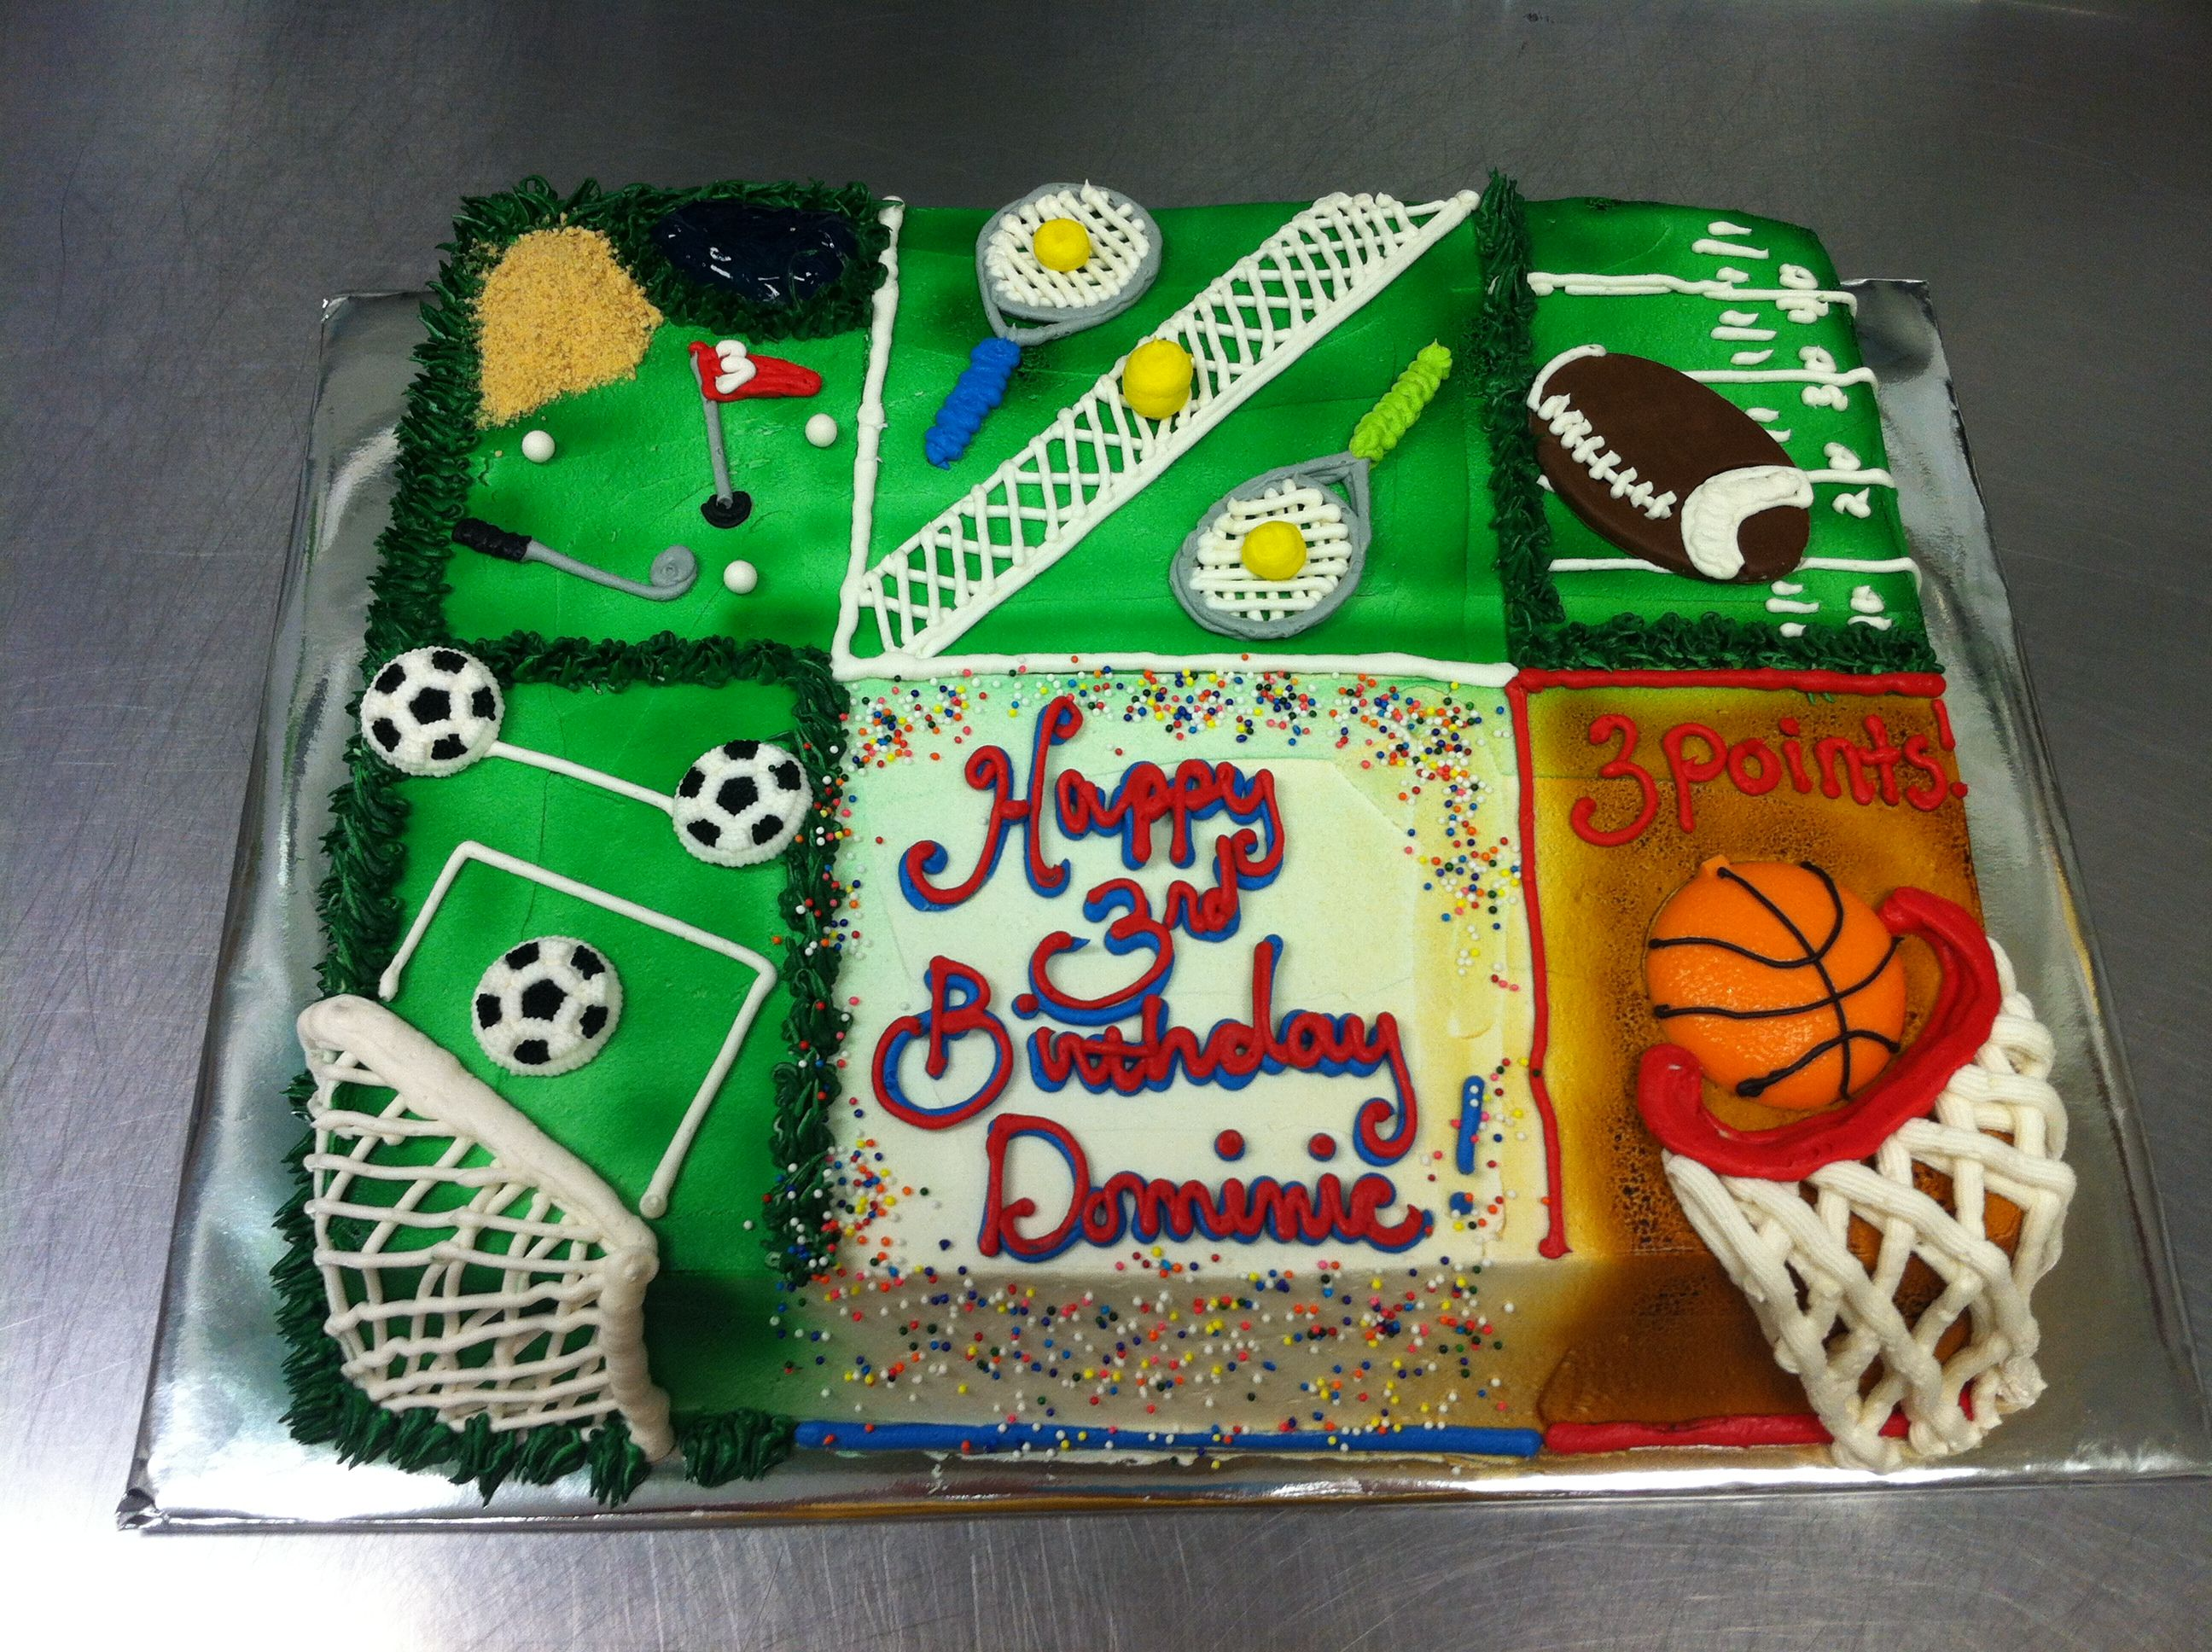 Sensational All Star Sports Themed Cake With Images Sports Themed Cakes Funny Birthday Cards Online Alyptdamsfinfo